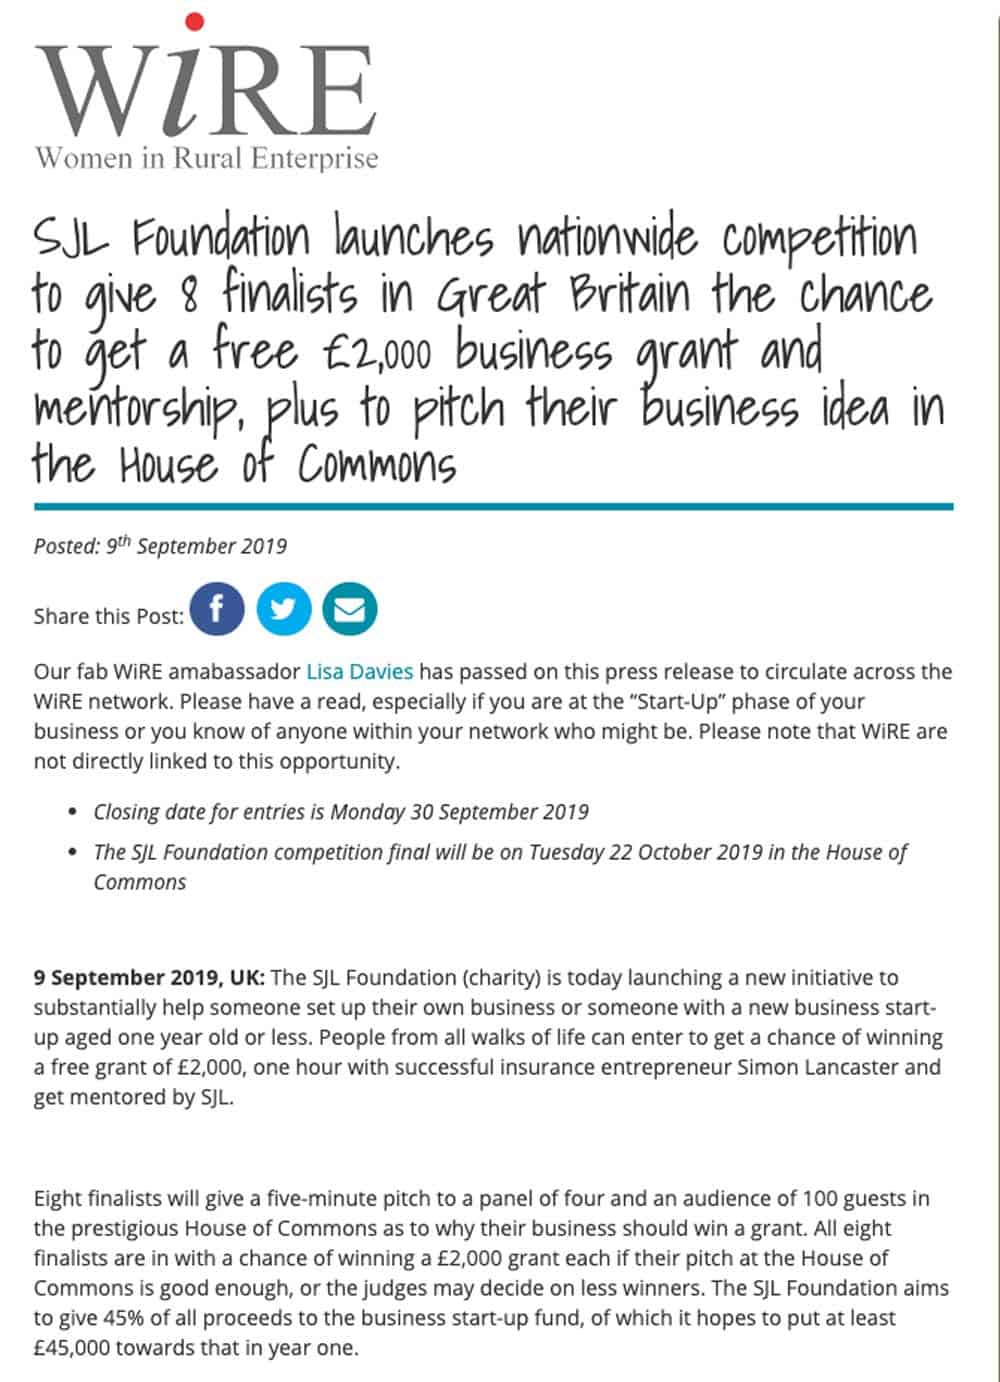 Nationwide-Competition-Free-Business-Grant-Mentoring-SJL-Foundation